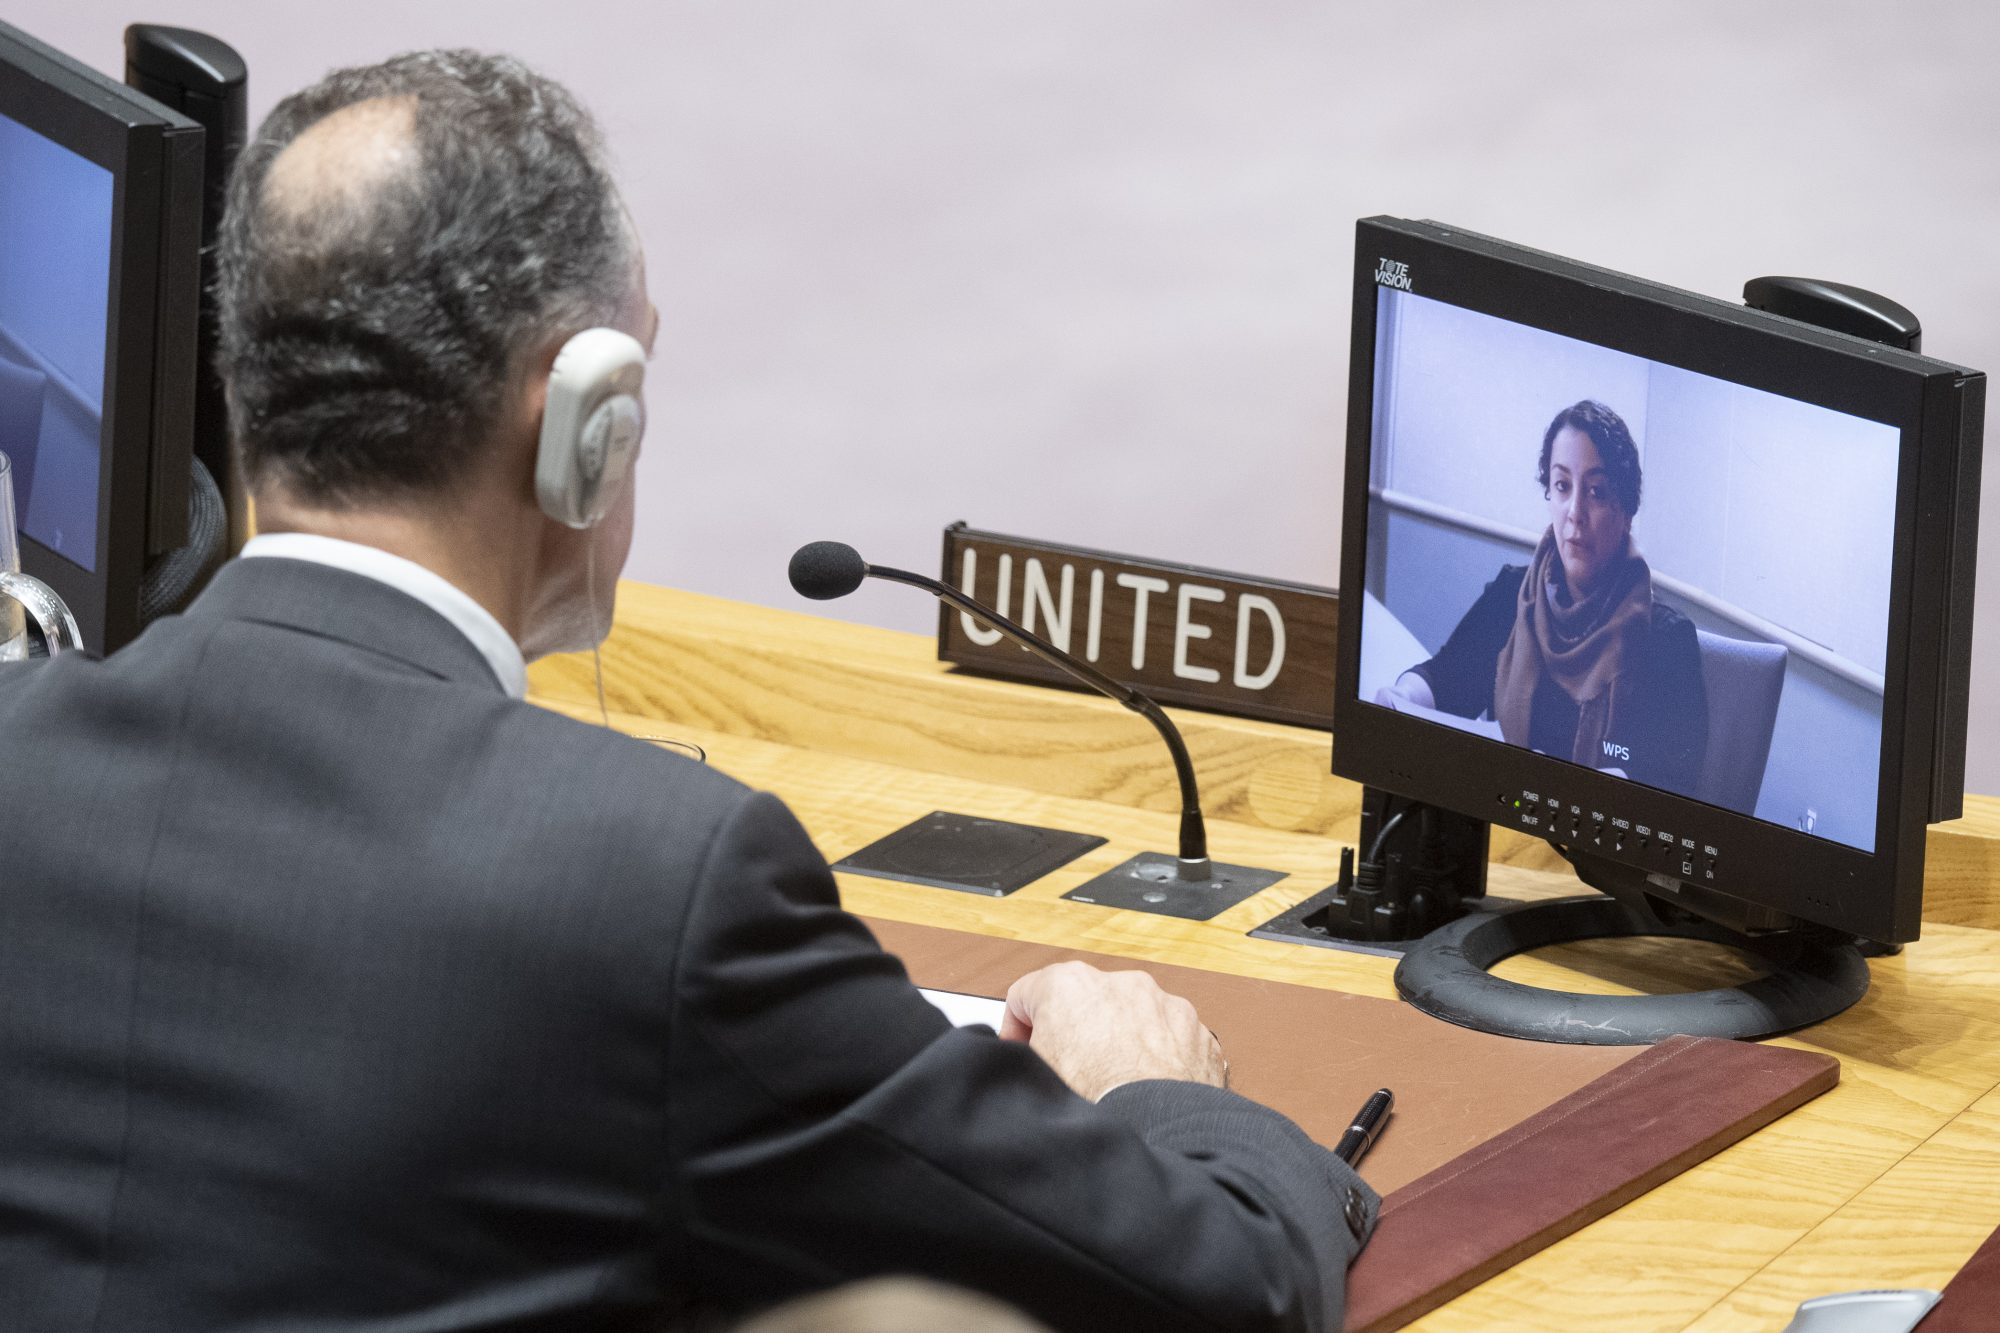 UN Security Council Briefing on Yemen by Rasha Jarhum